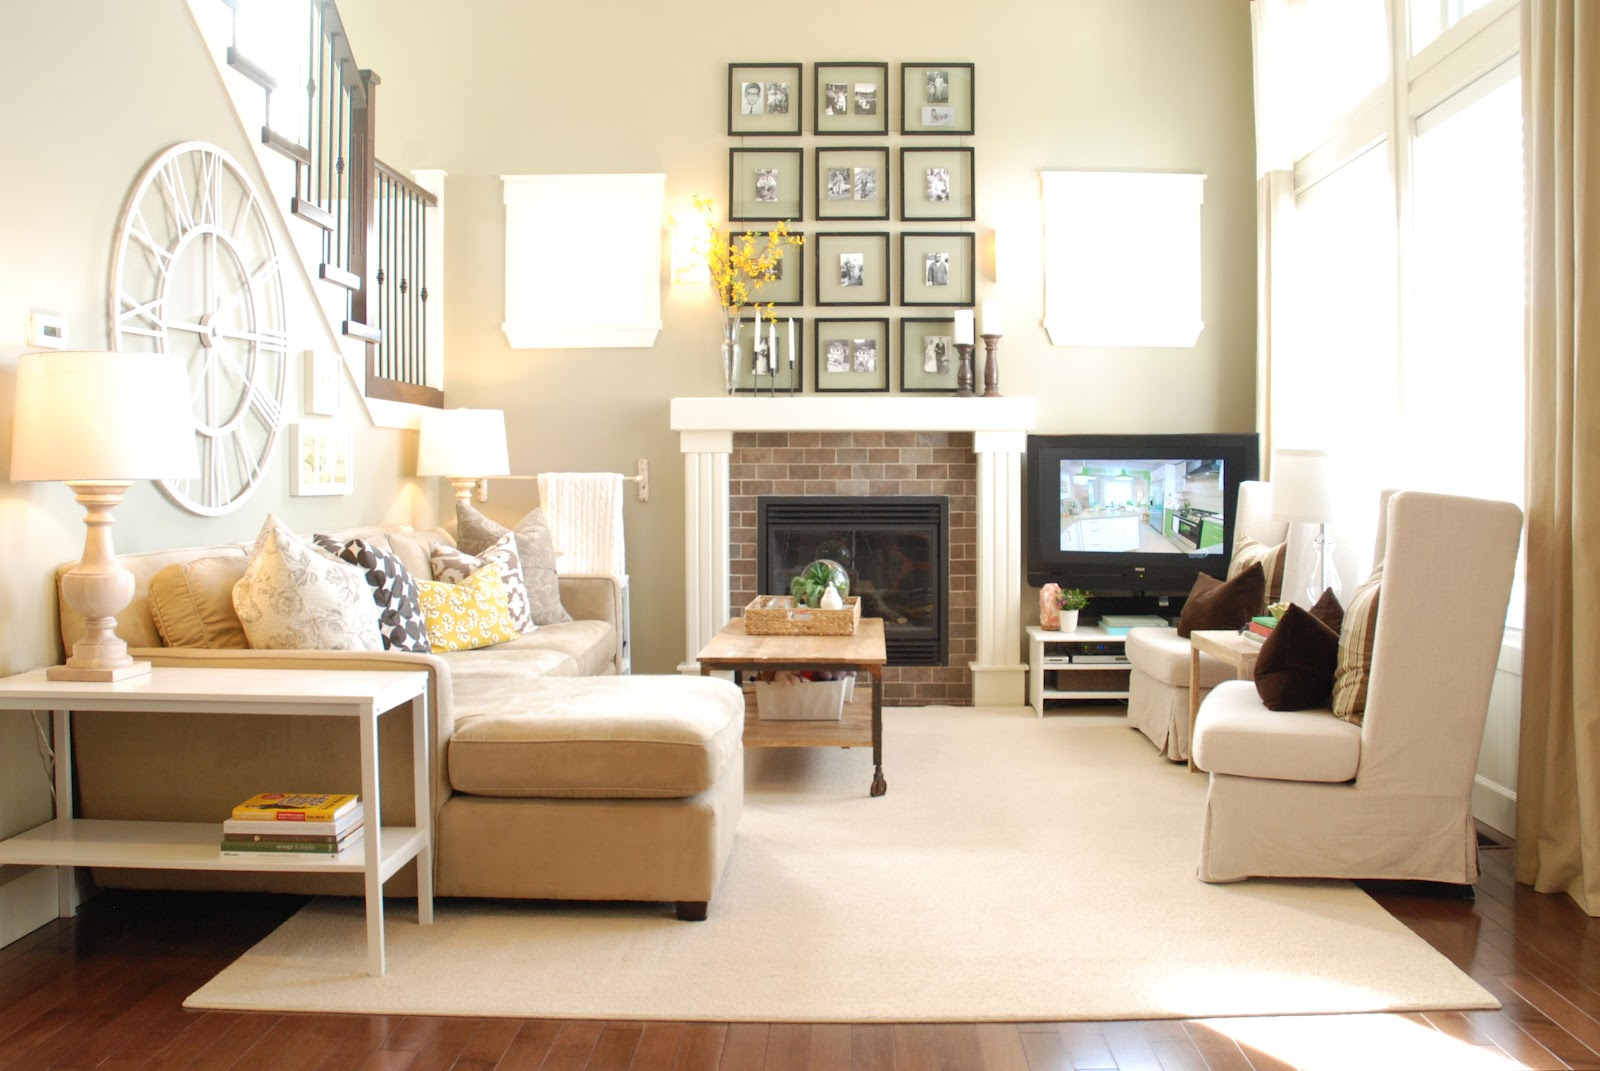 Outstanding Ideas for Decorating a Living Room with Beige Sectional 1600 x 1071 · 214 kB · jpeg